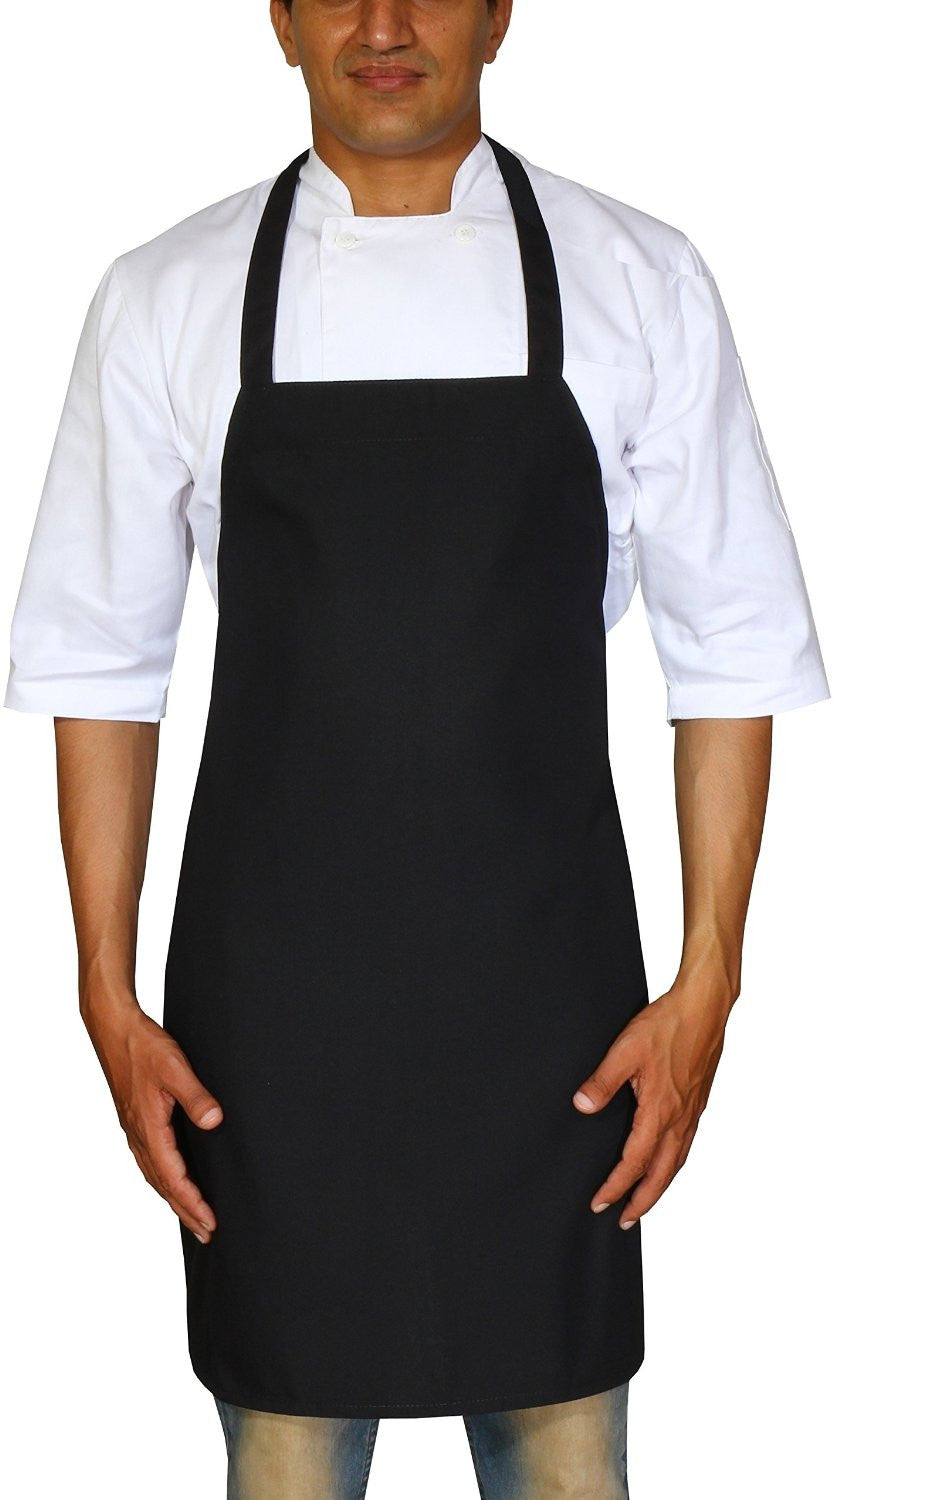 Professional Bib Apron (Black - 12 Pack)